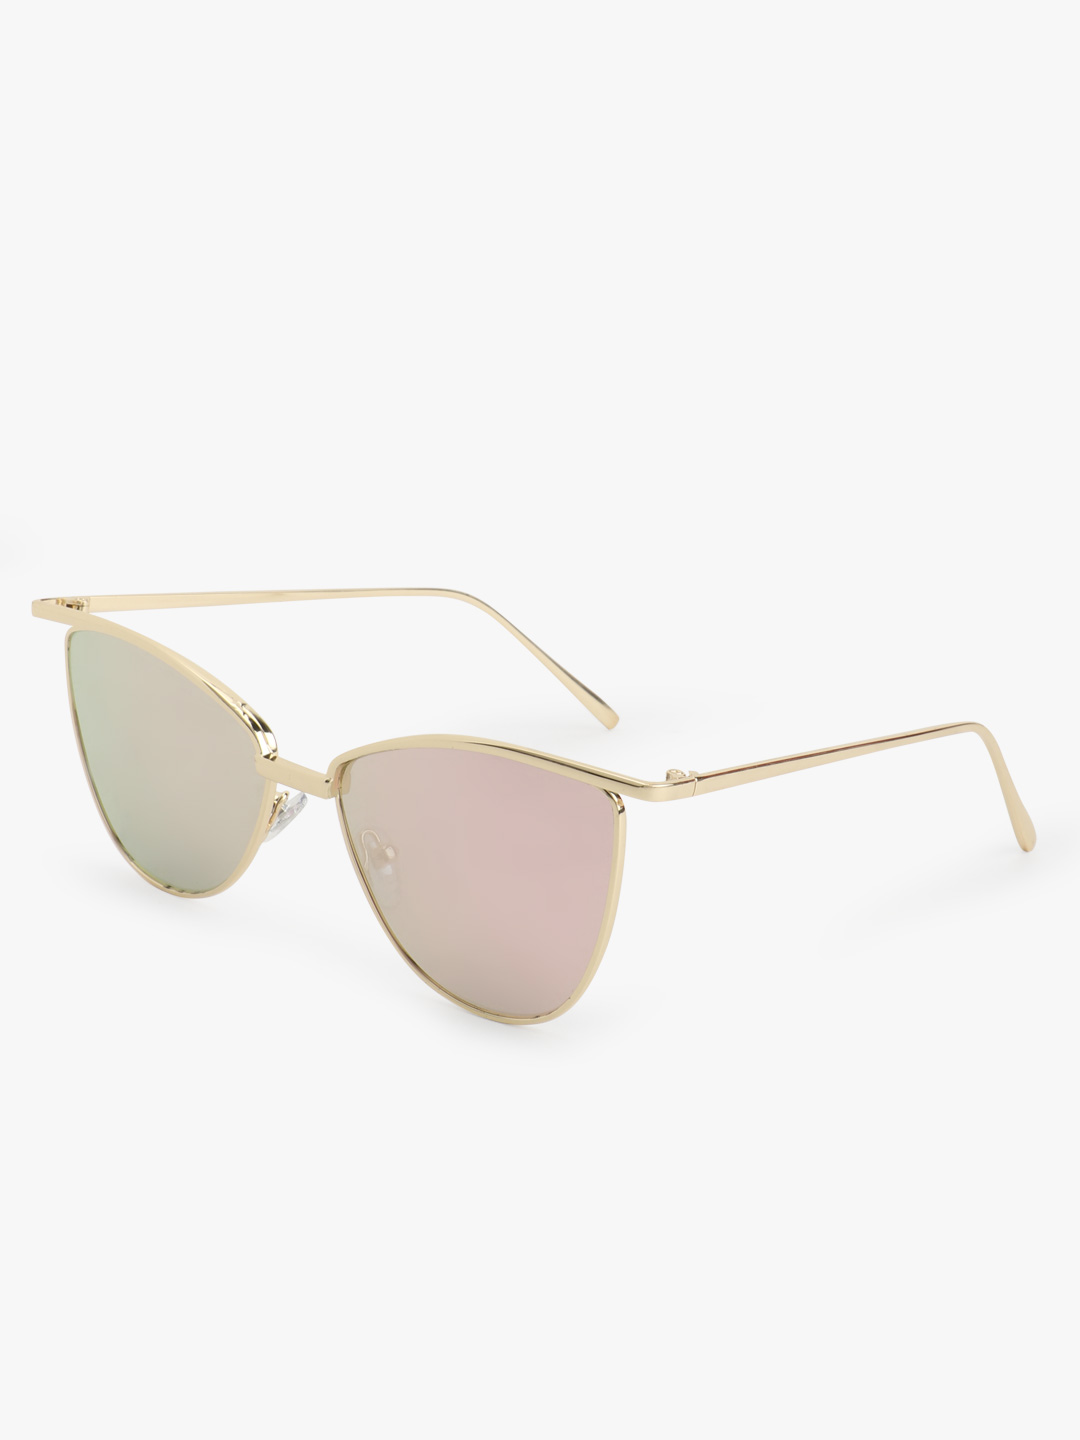 Sneak-a-Peek Purple Gold Rimmed Cateye Sunglasses 1